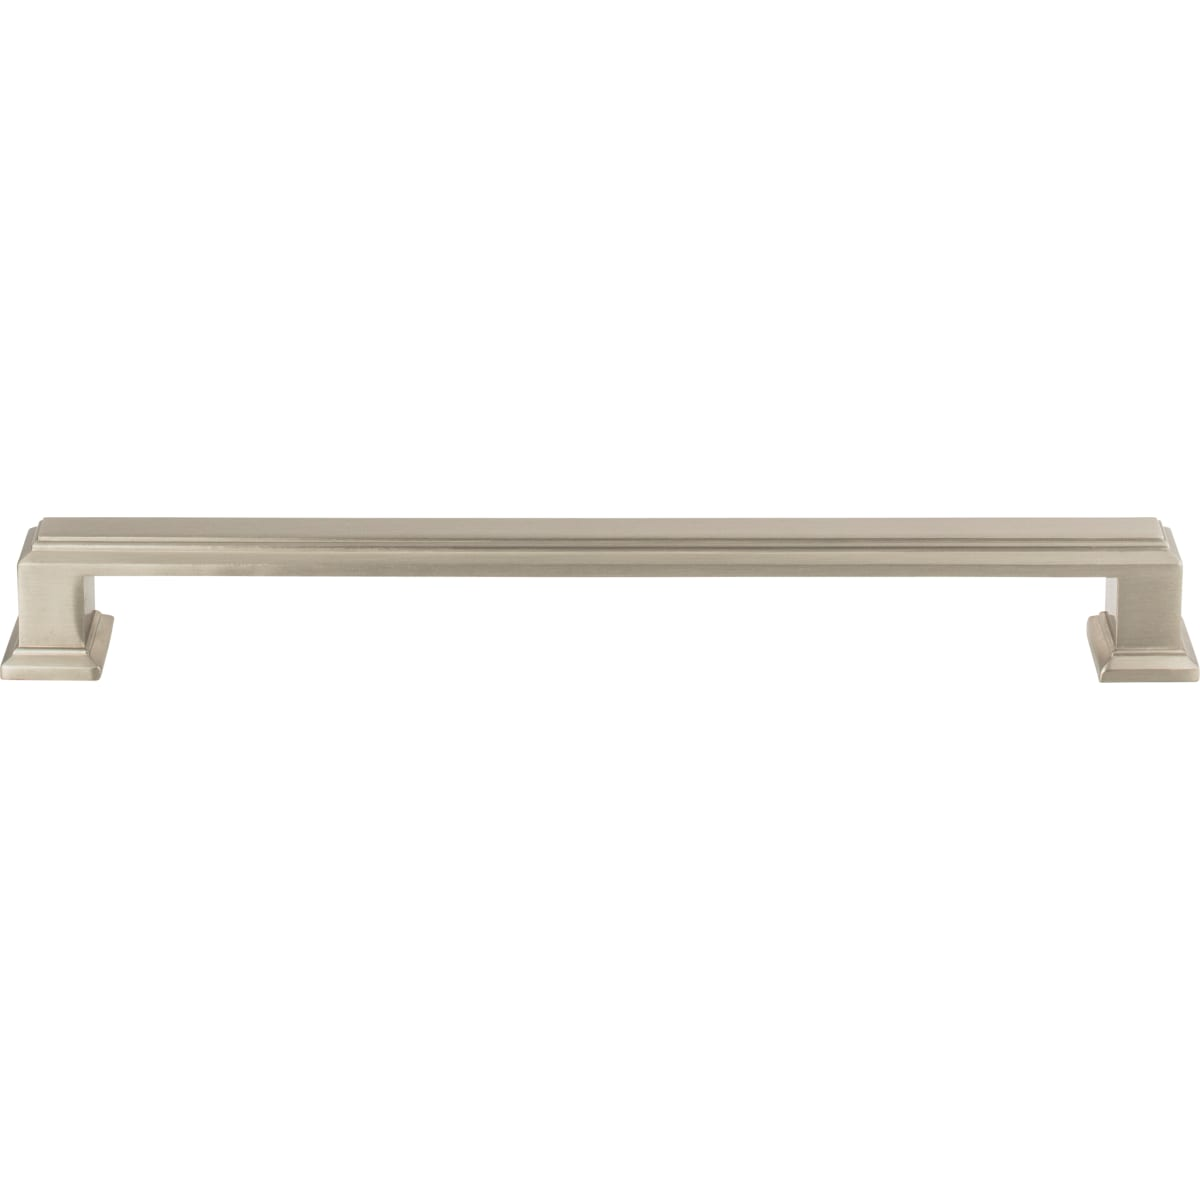 Atlas Homewares 293 Brn Brushed Nickel Sutton Place 7 9 16 Inch Center To Center Handle Cabinet Pull Pullsdirect Com